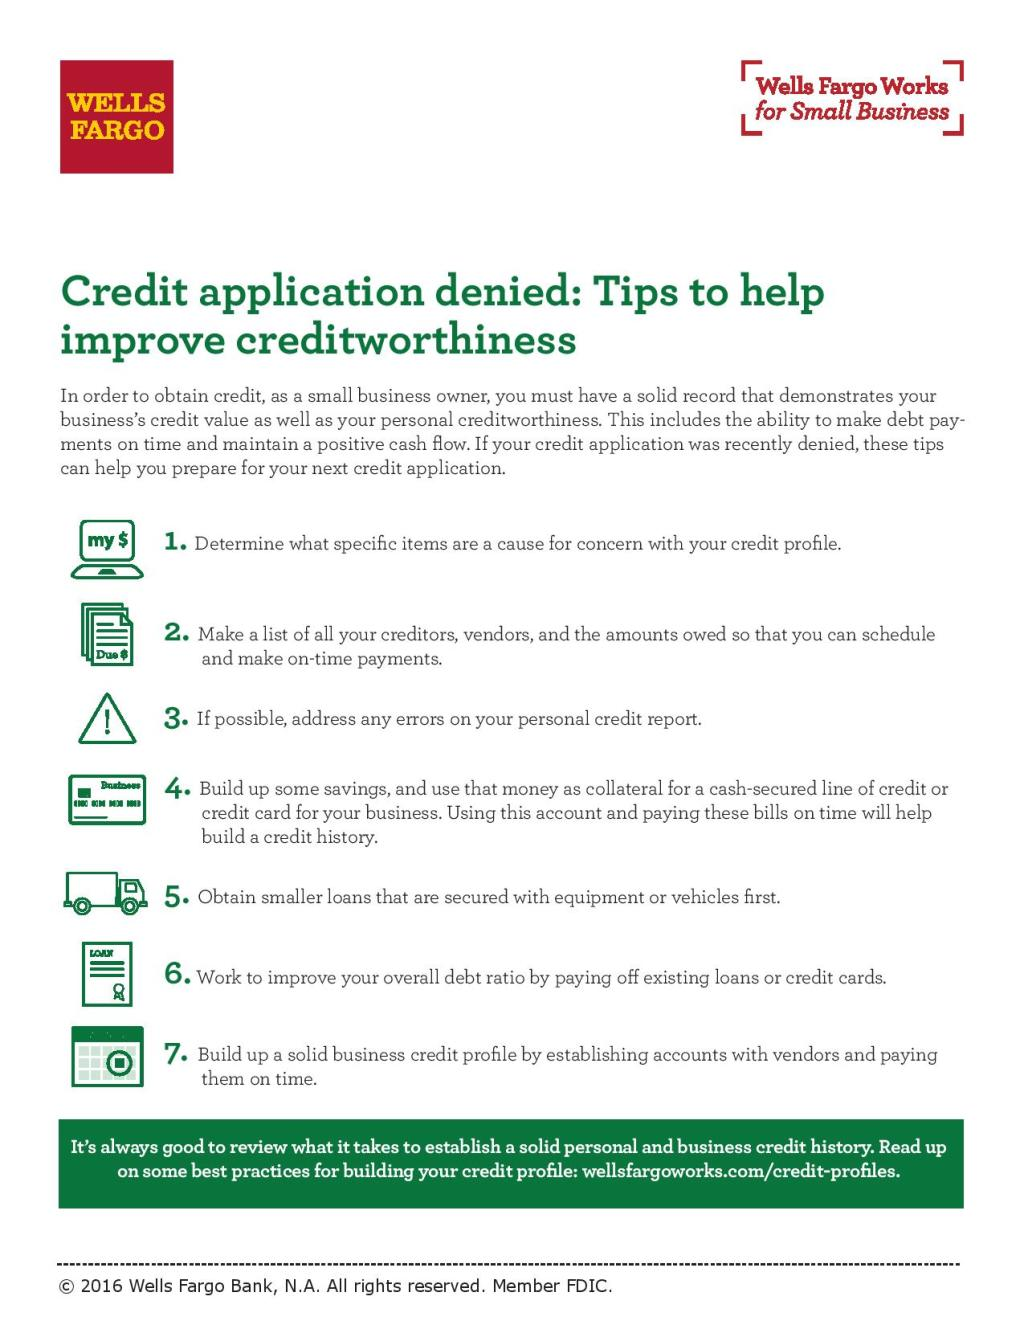 Tips for improving creditworthiness wells fargo credit application denied tips to help improve creditworthiness colourmoves